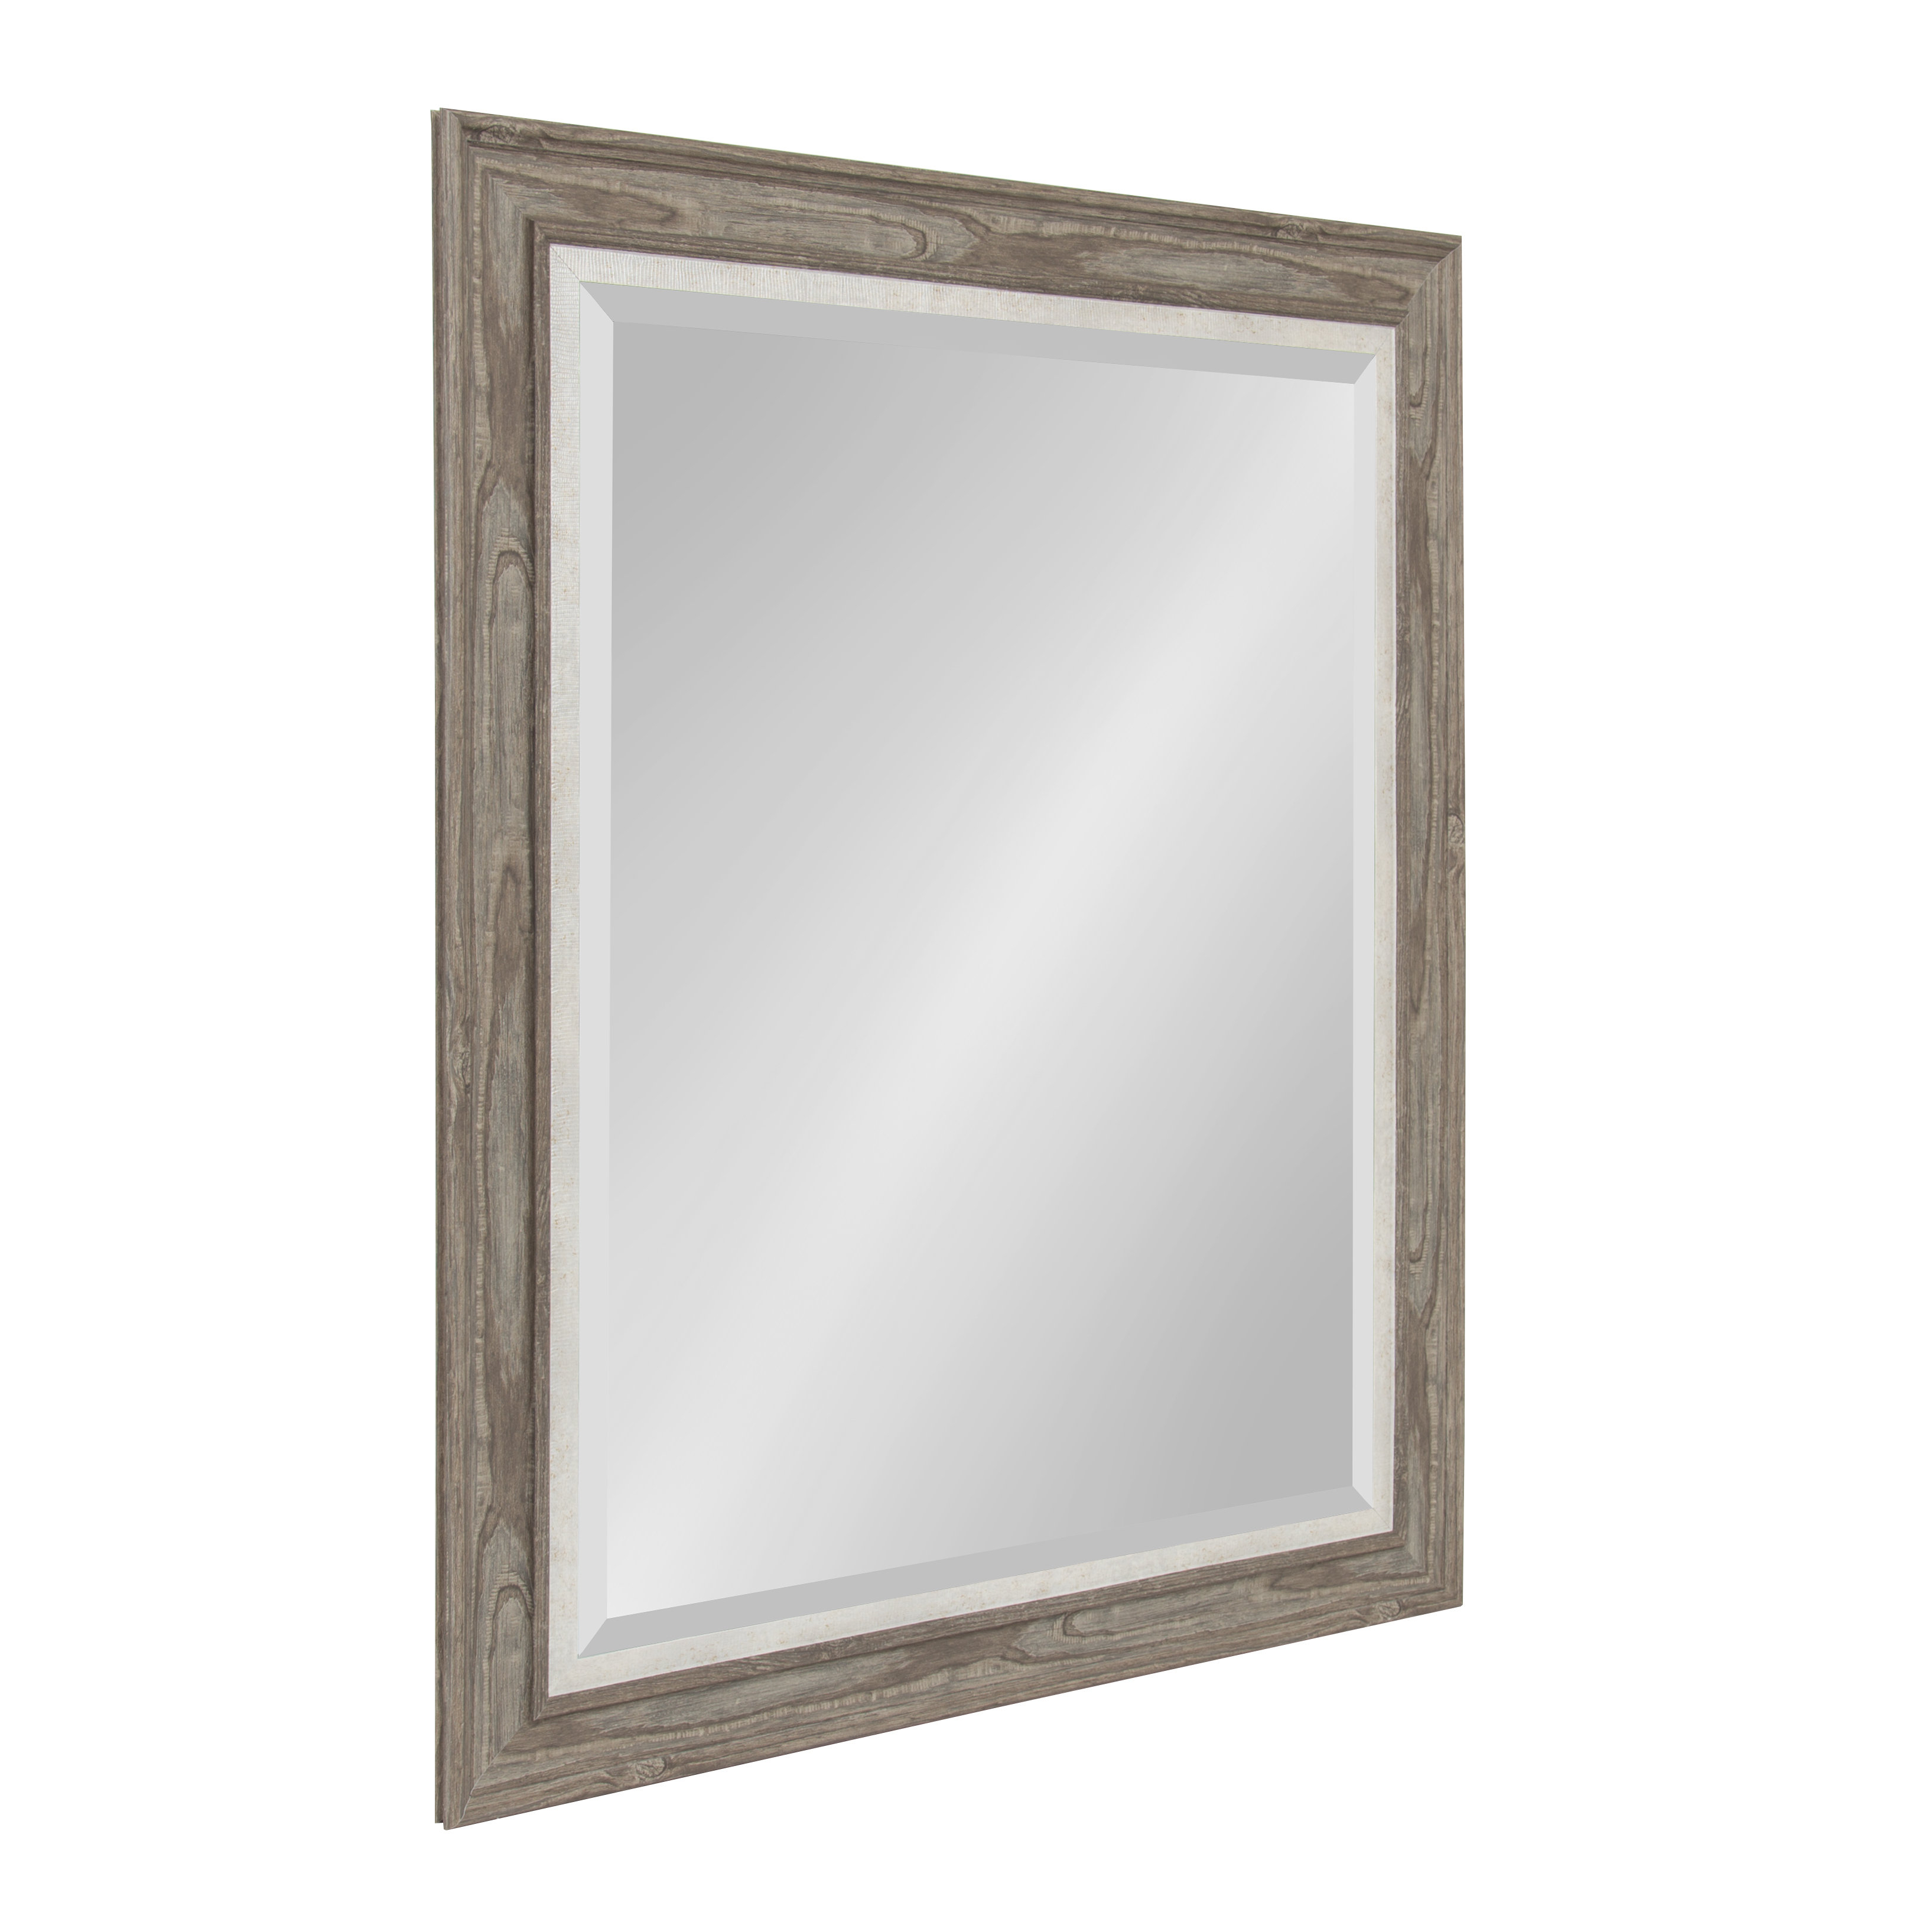 Glass Framed Mirror | Wayfair With Regard To Caja Rectangle Glass Frame Wall Mirrors (View 5 of 30)